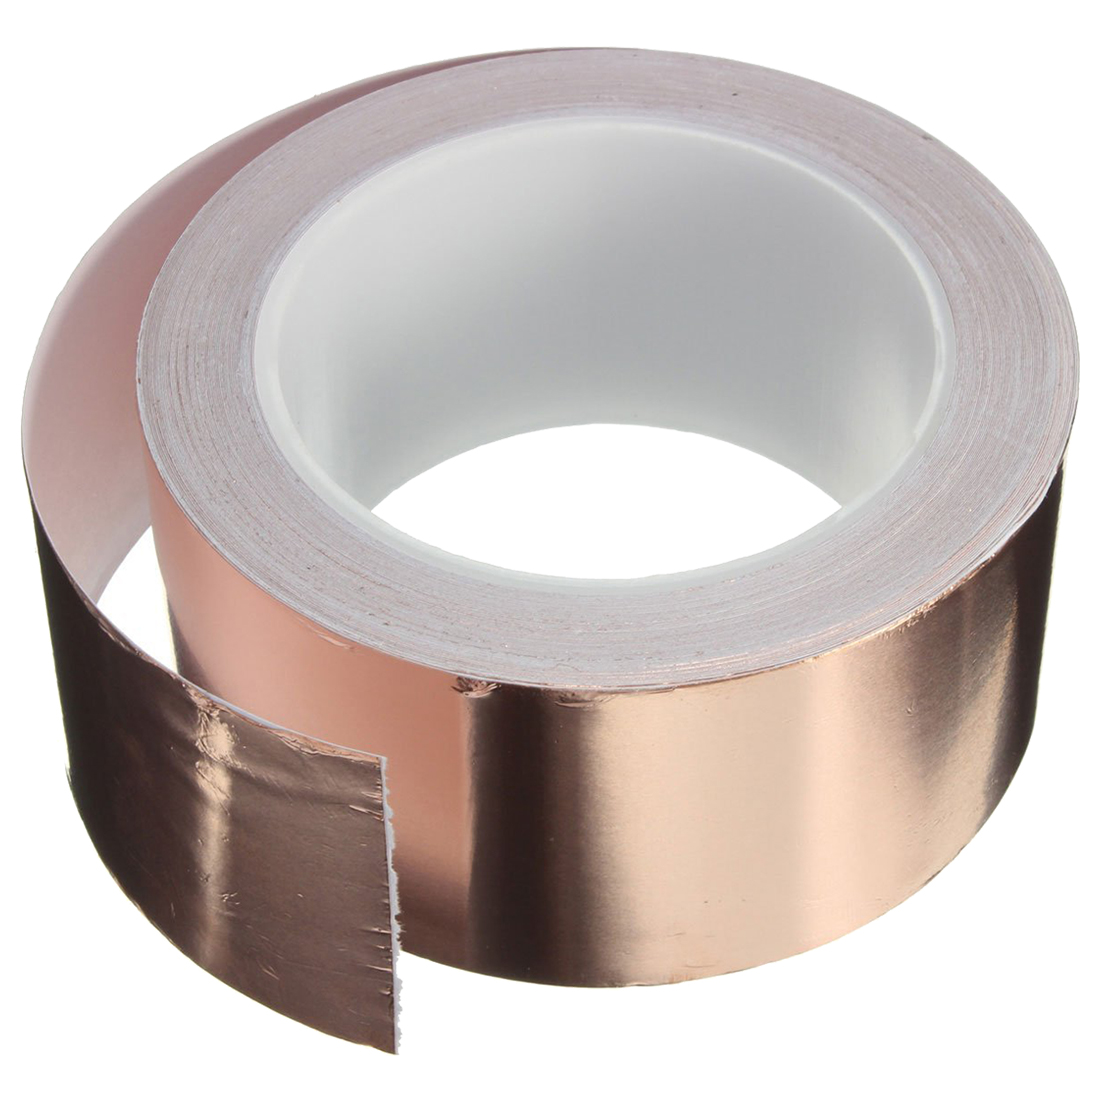 5 PCS of Copper Foil Tape 50mm x 20m EMI Shielding Conductive Adhesive for Stained Glass